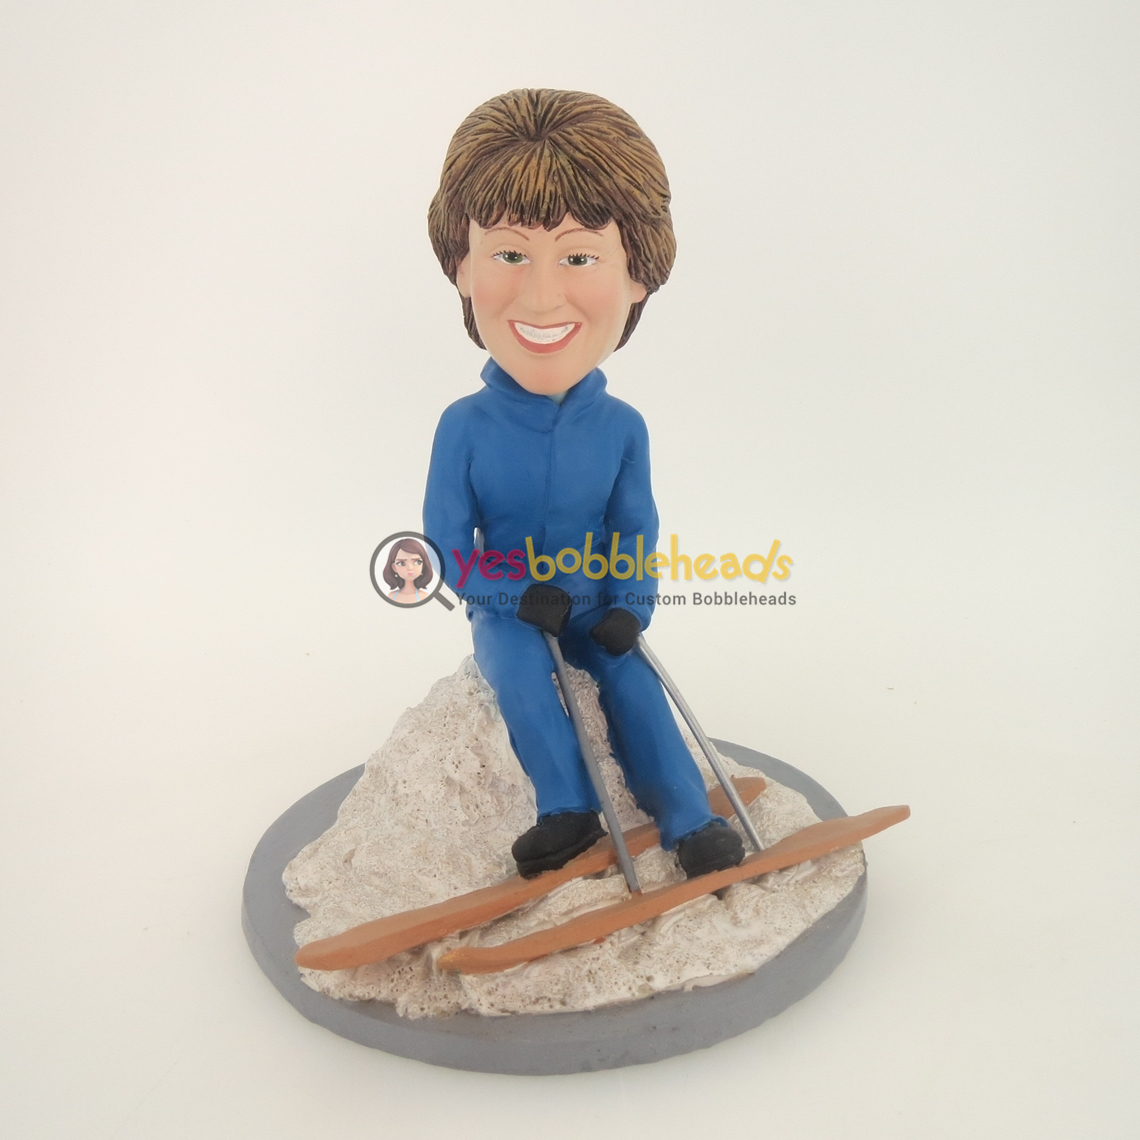 Picture of Custom Bobblehead Doll: Skiing Woman